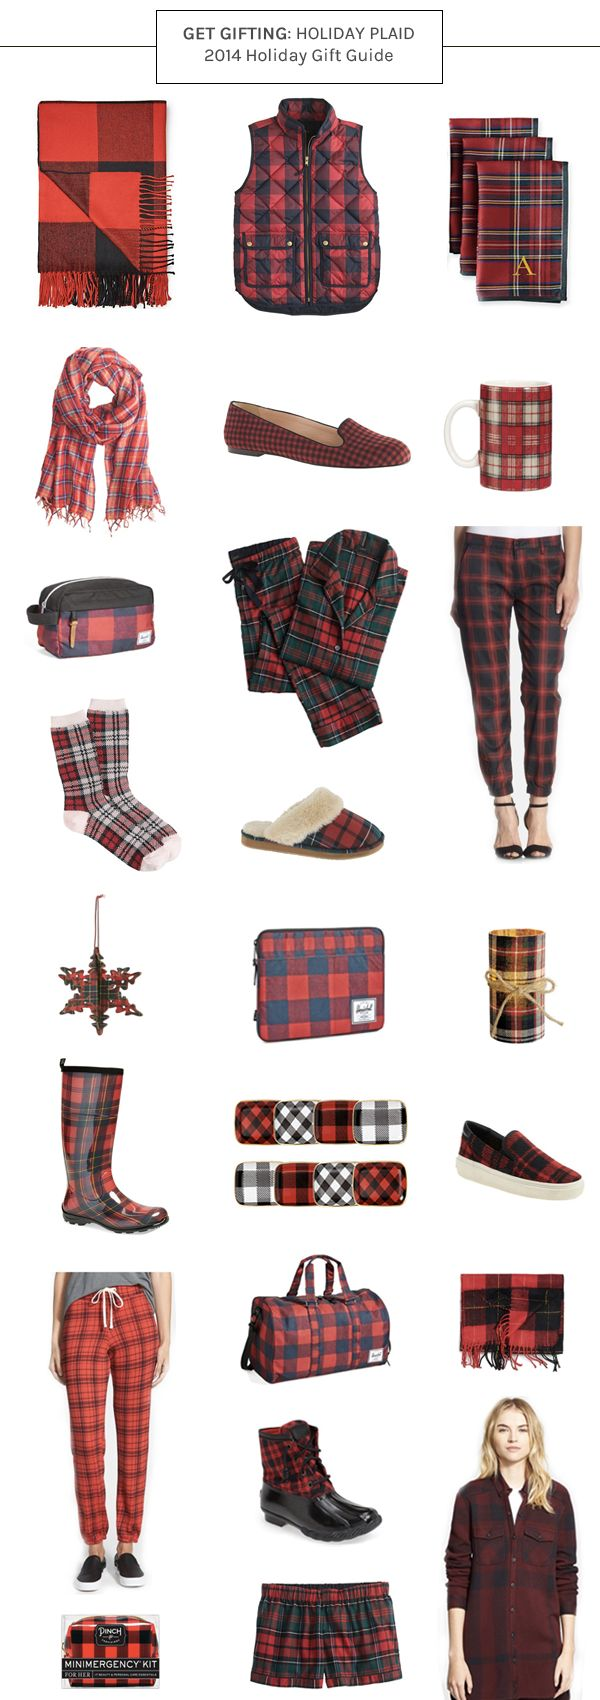 < holiday gift guide for all the plaid enthusiasts! > #giftguide #plaid